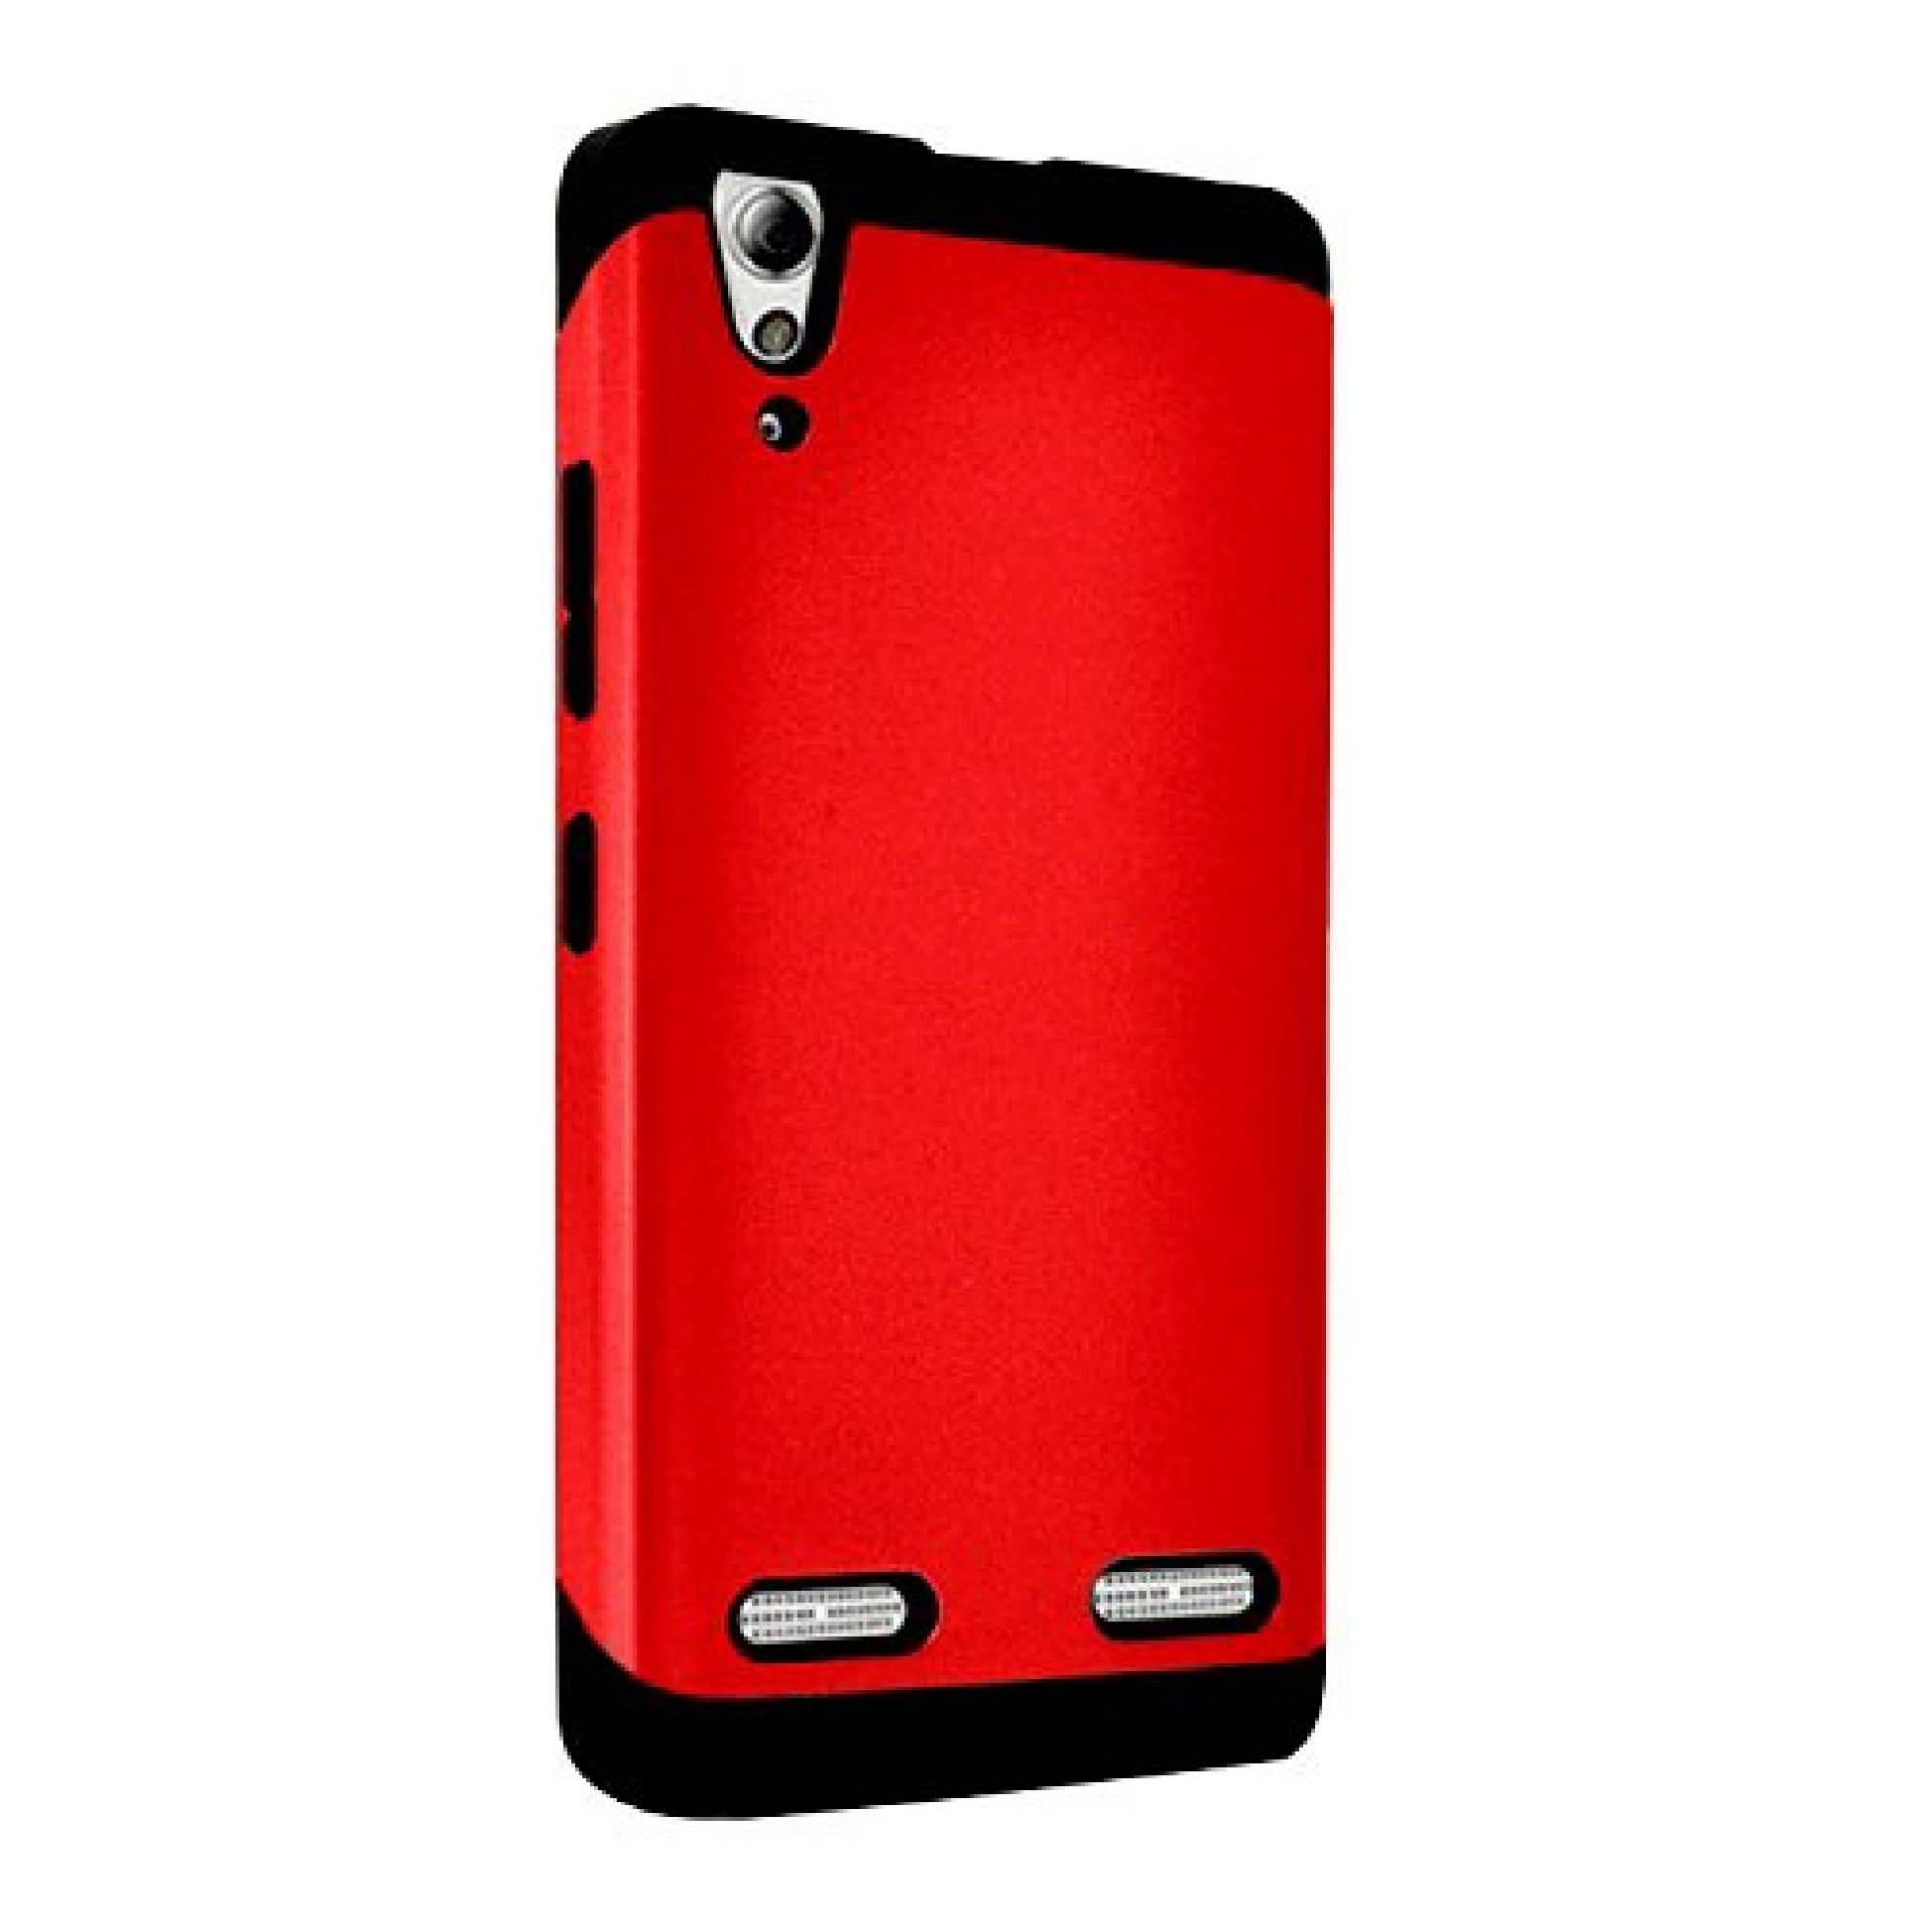 Lenovo Phone Cases Philippines - Lenovo Cellphone Cases for sale